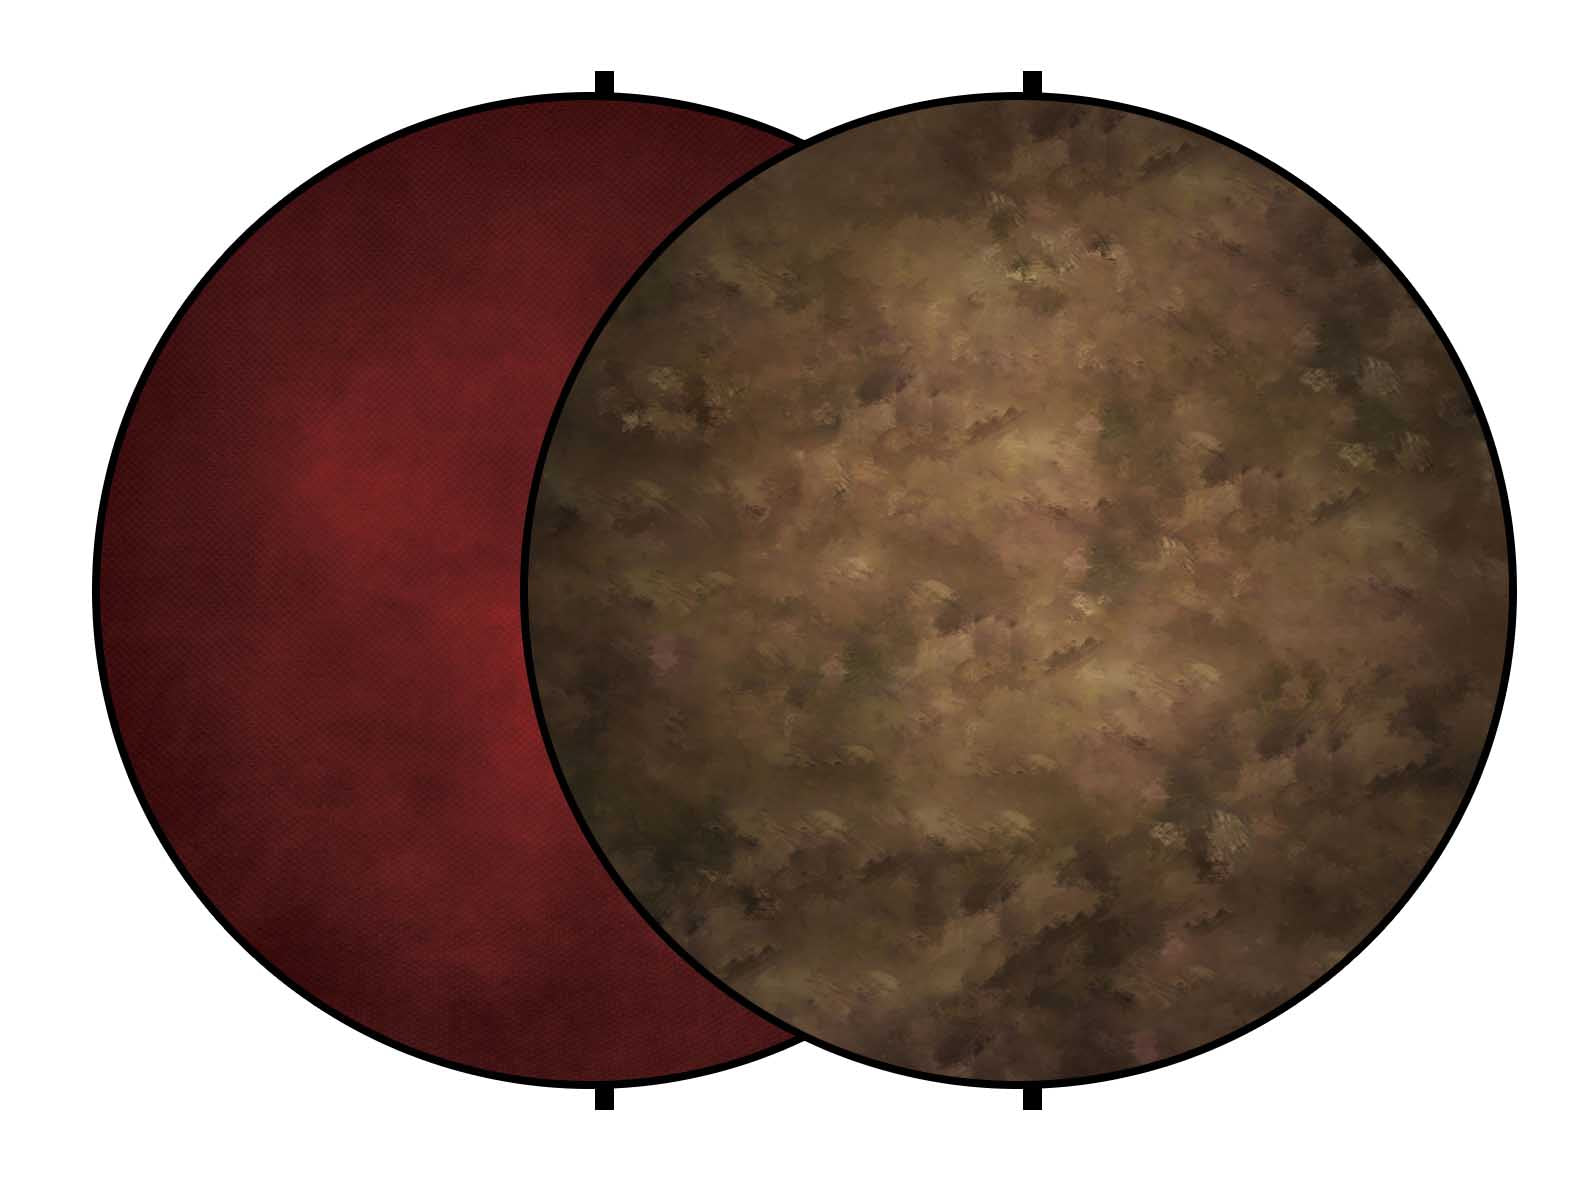 Fox Abstract Brown/Burgundy Collapsible Portrait Backdrop 5x5ft(1.5x1.5m)